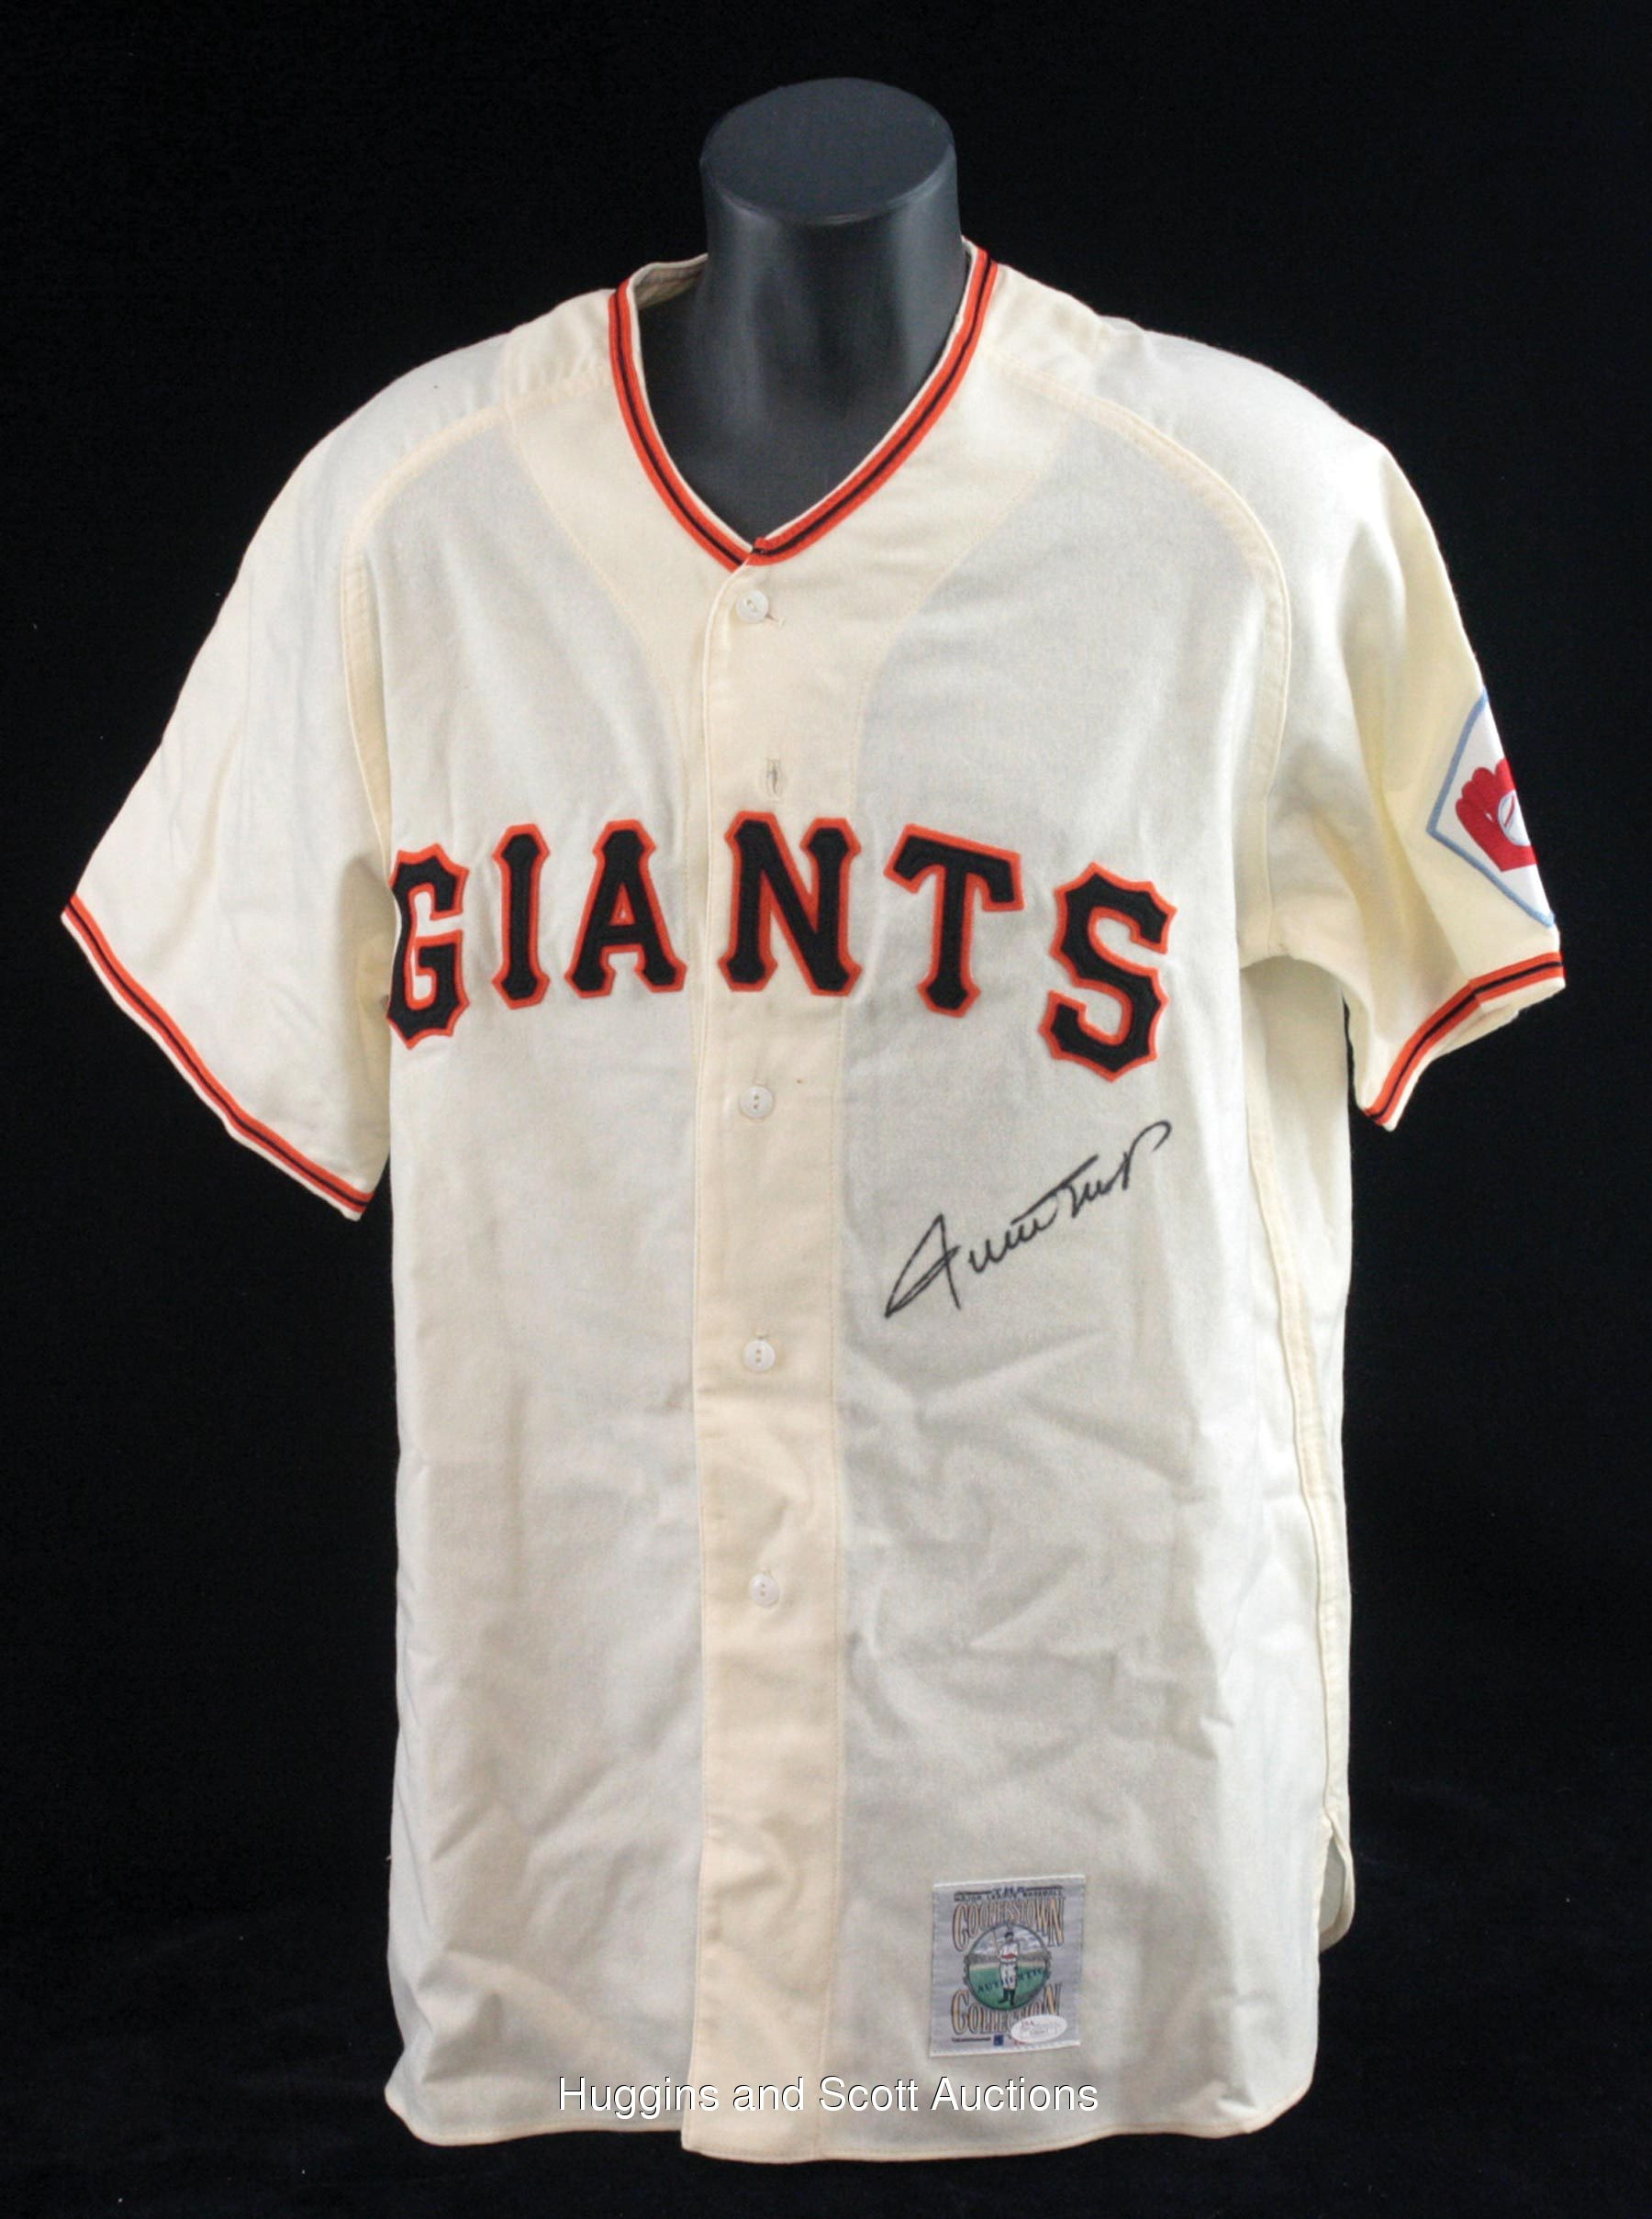 46a0ca64 Willie Mays Autographed Mitchell & Ness 1951 New York Giants Jersey ...